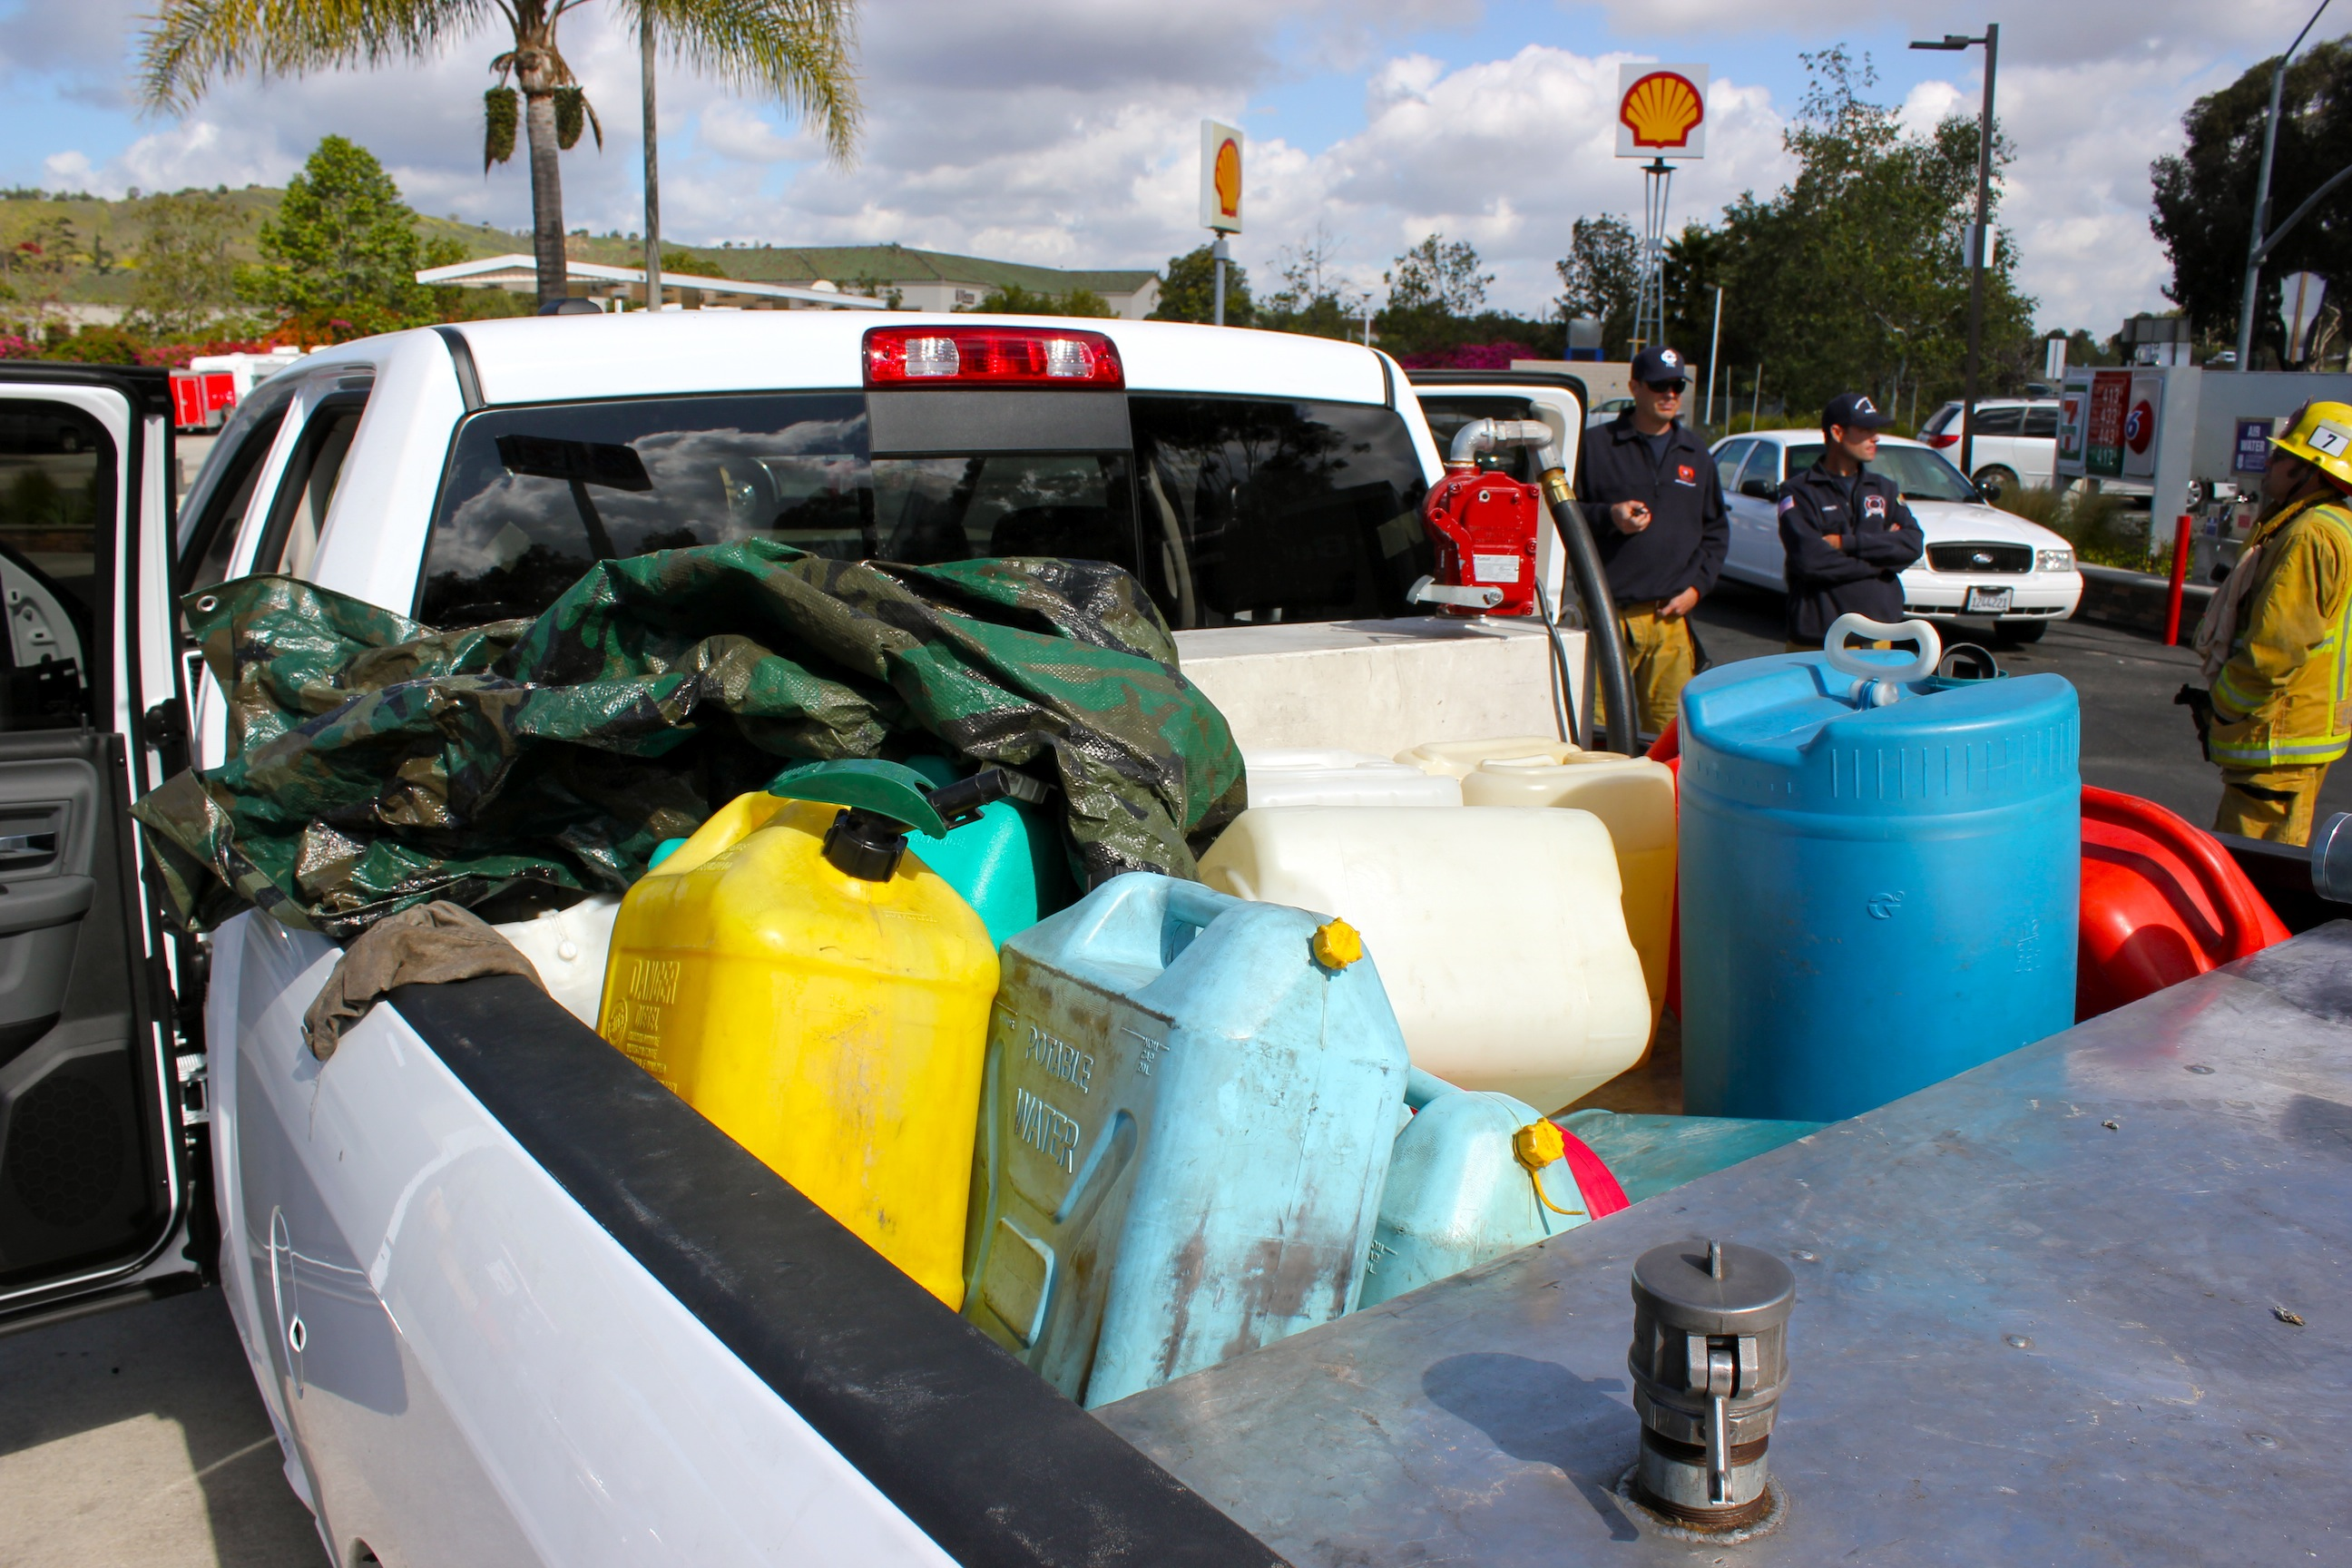 Orange County Sheriff's Deputies and investigators discovered several containers in the bed of a pick-up truck driven by a suspected gas thief. Photo by Brian Park